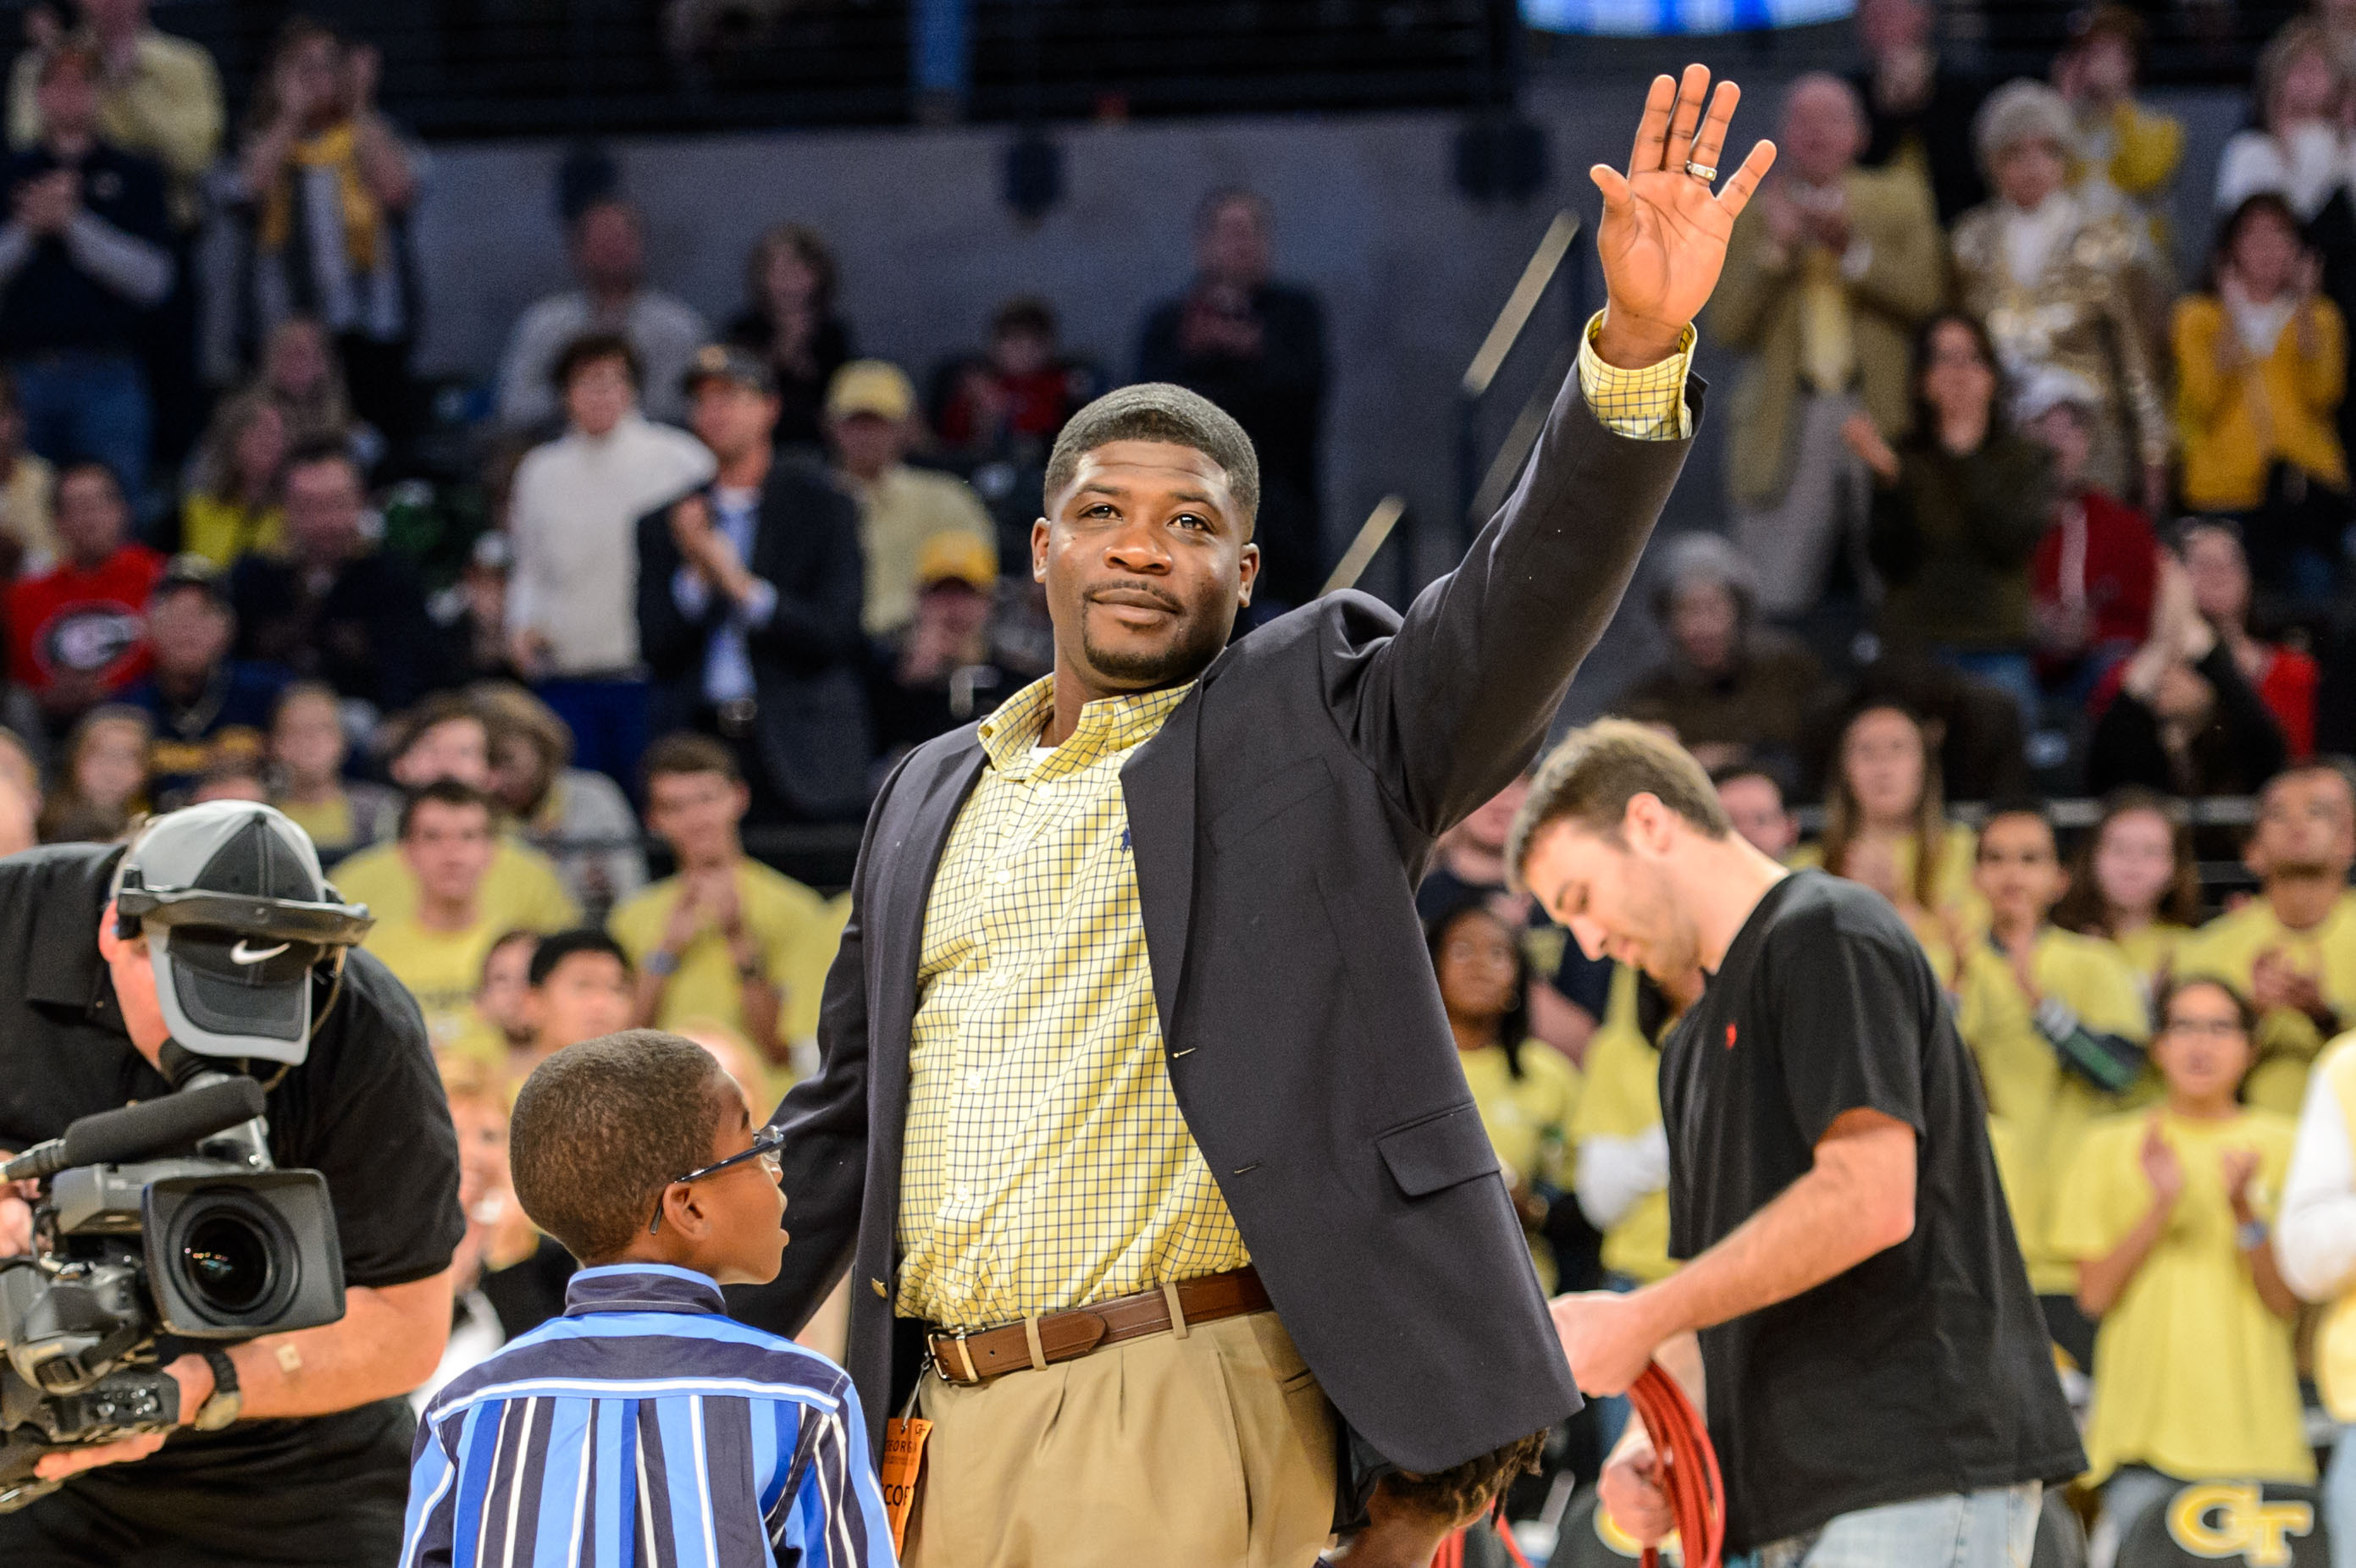 Former Georgia Tech quarterback Joe Hamilton is recognized on the court for his upcoming induction into the College Football Hall of Fame